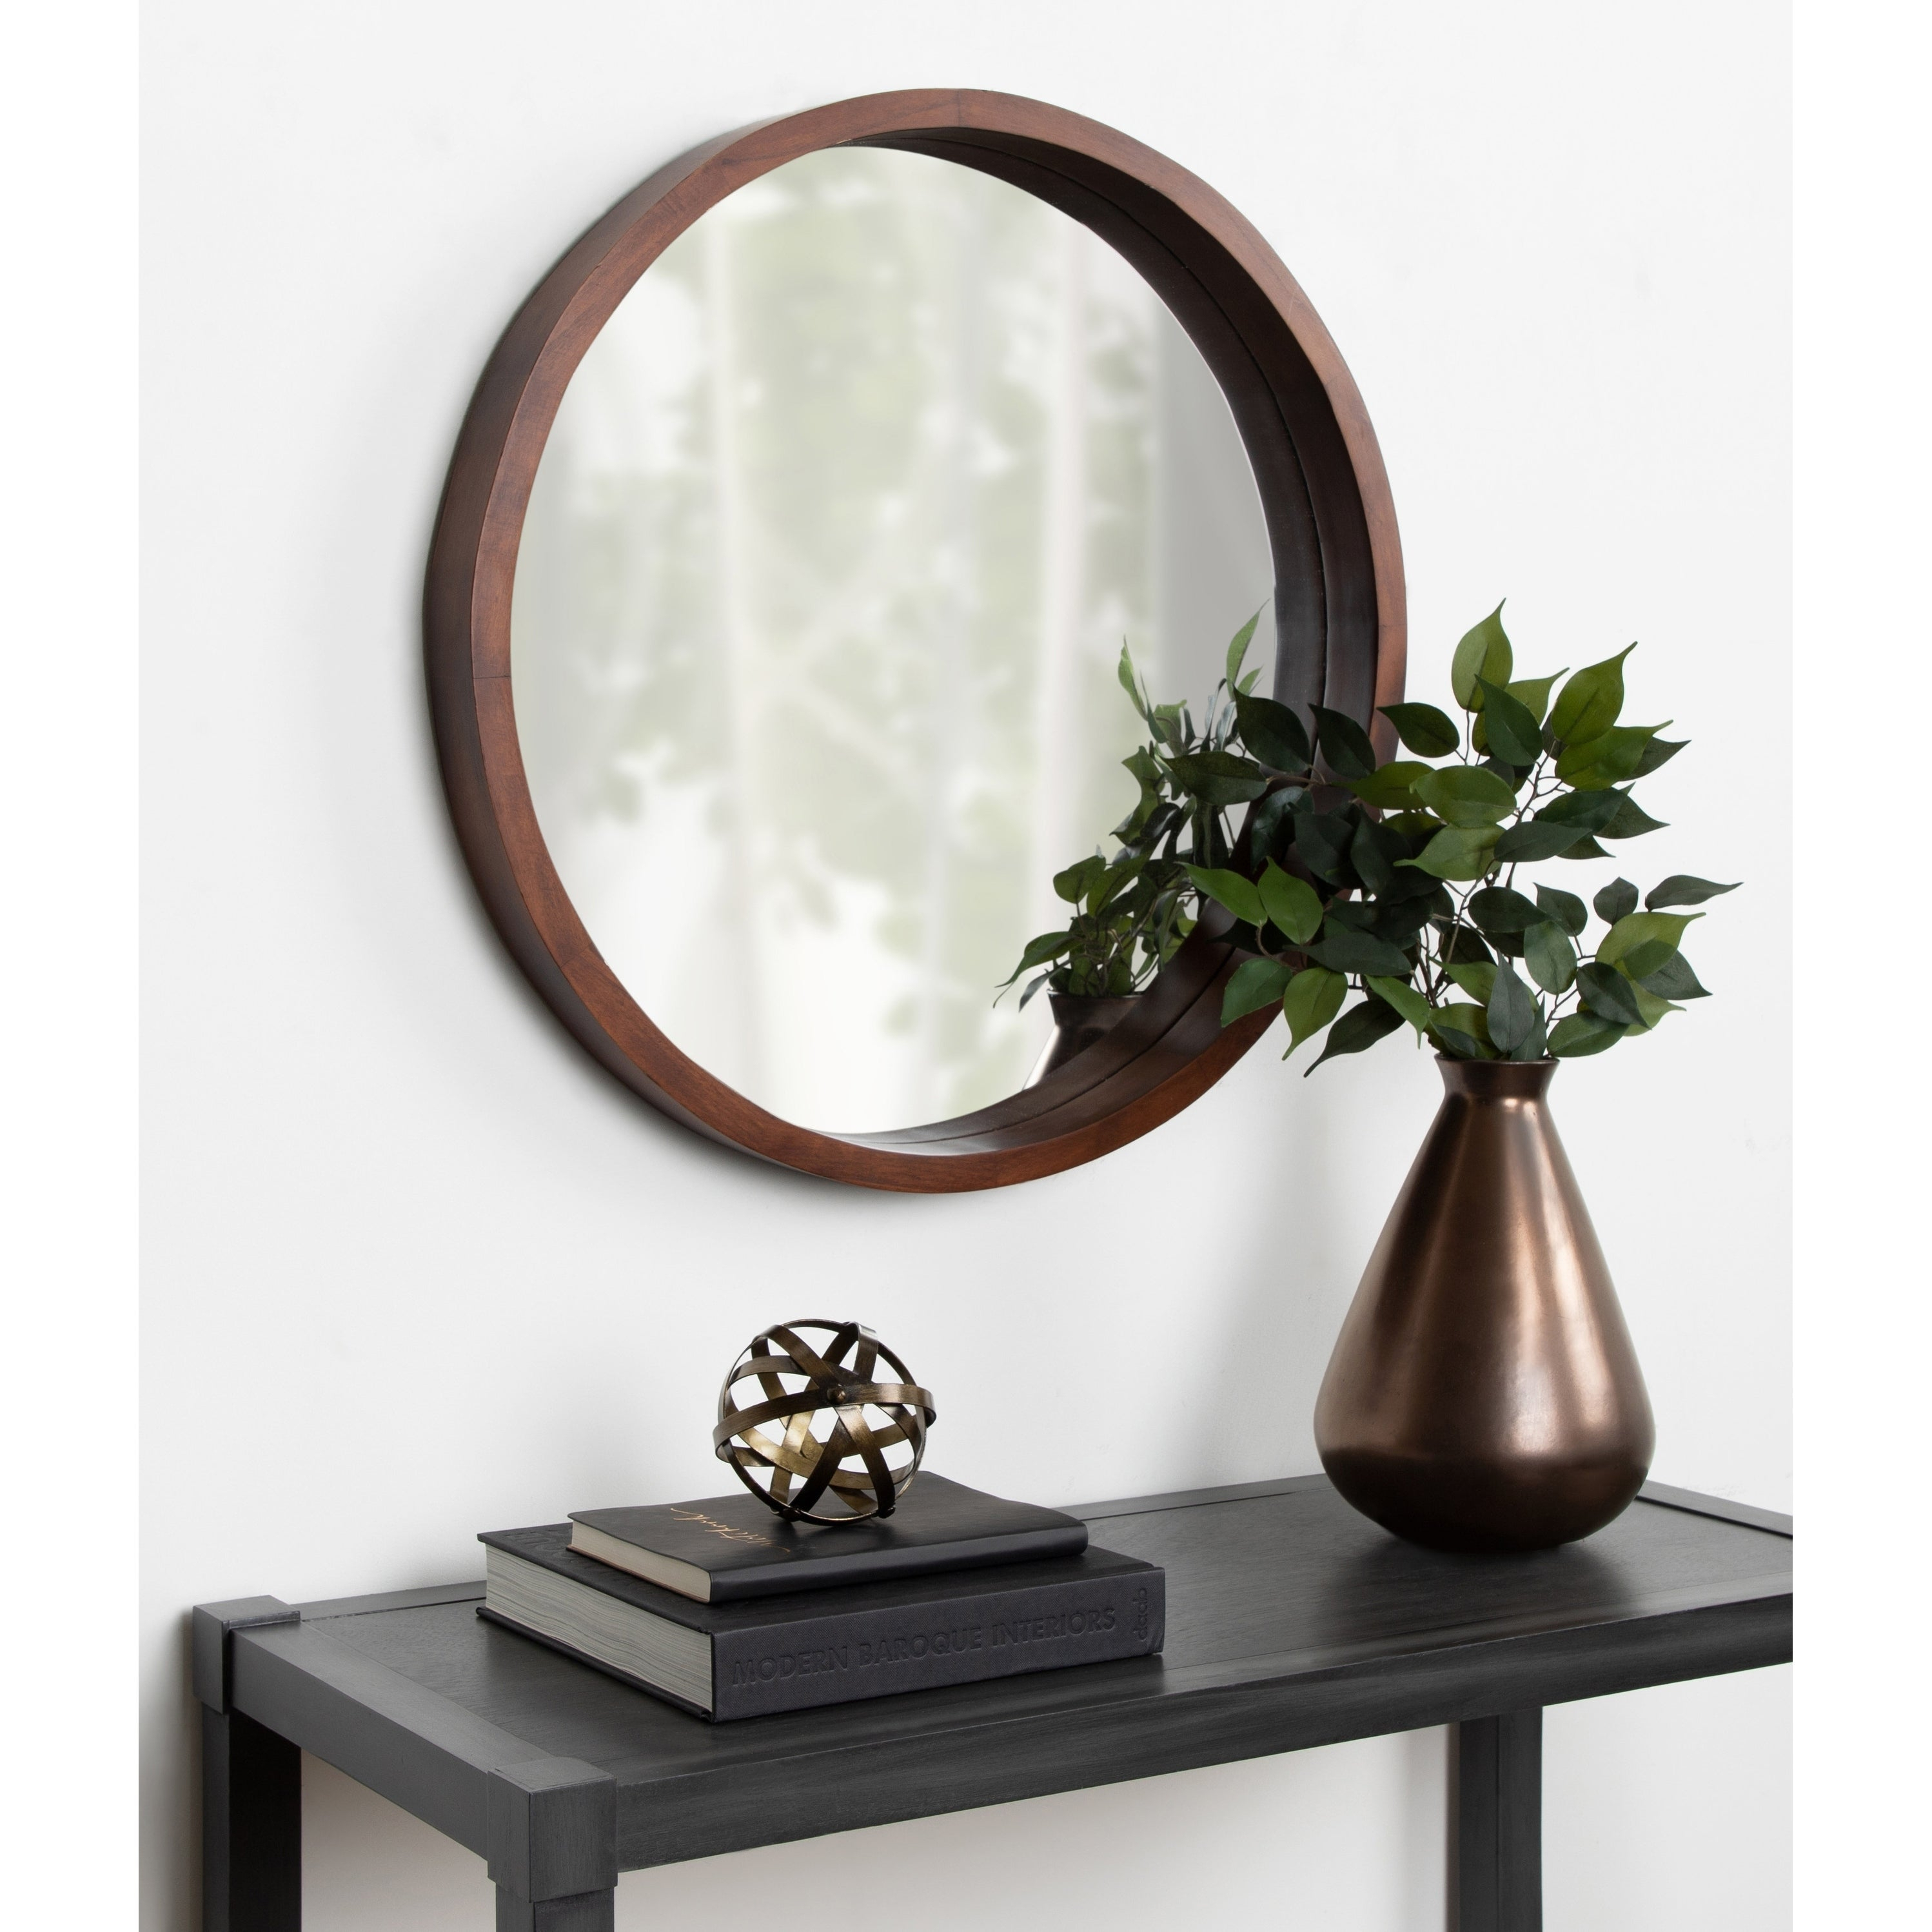 Accent Mirrors | Shop Online At Overstock With Regard To Berinhard Accent Mirrors (View 11 of 20)